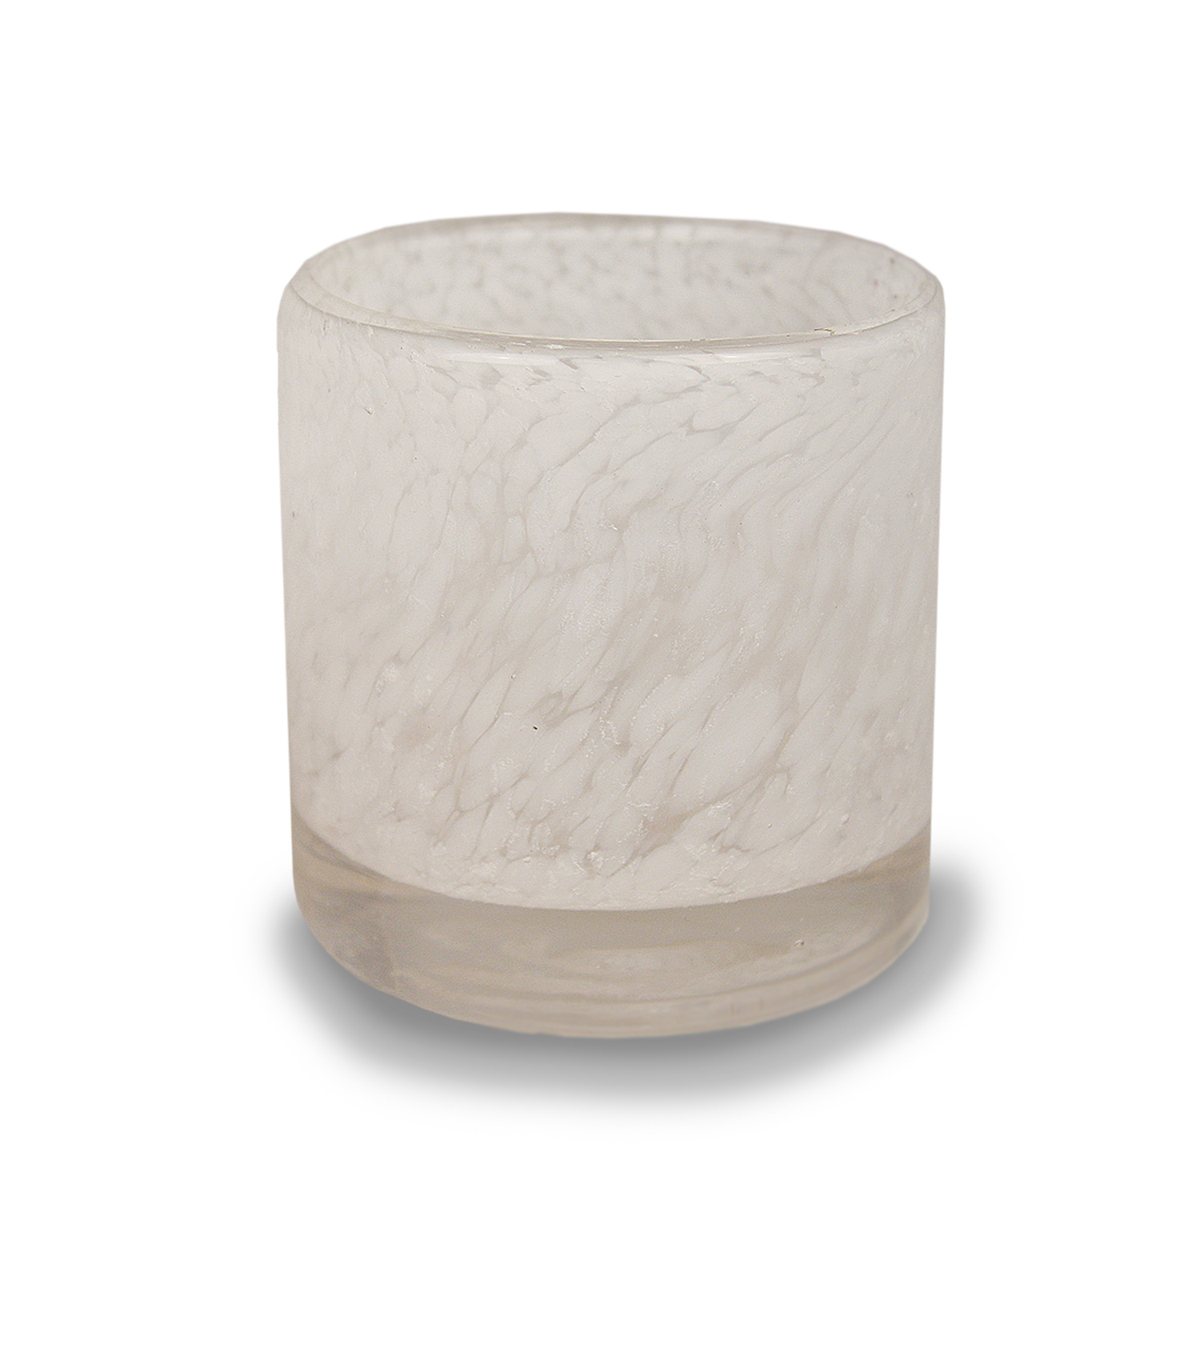 Hudson 43™ Candle & Light Collection White Sea Glass Medium Tealight Holder